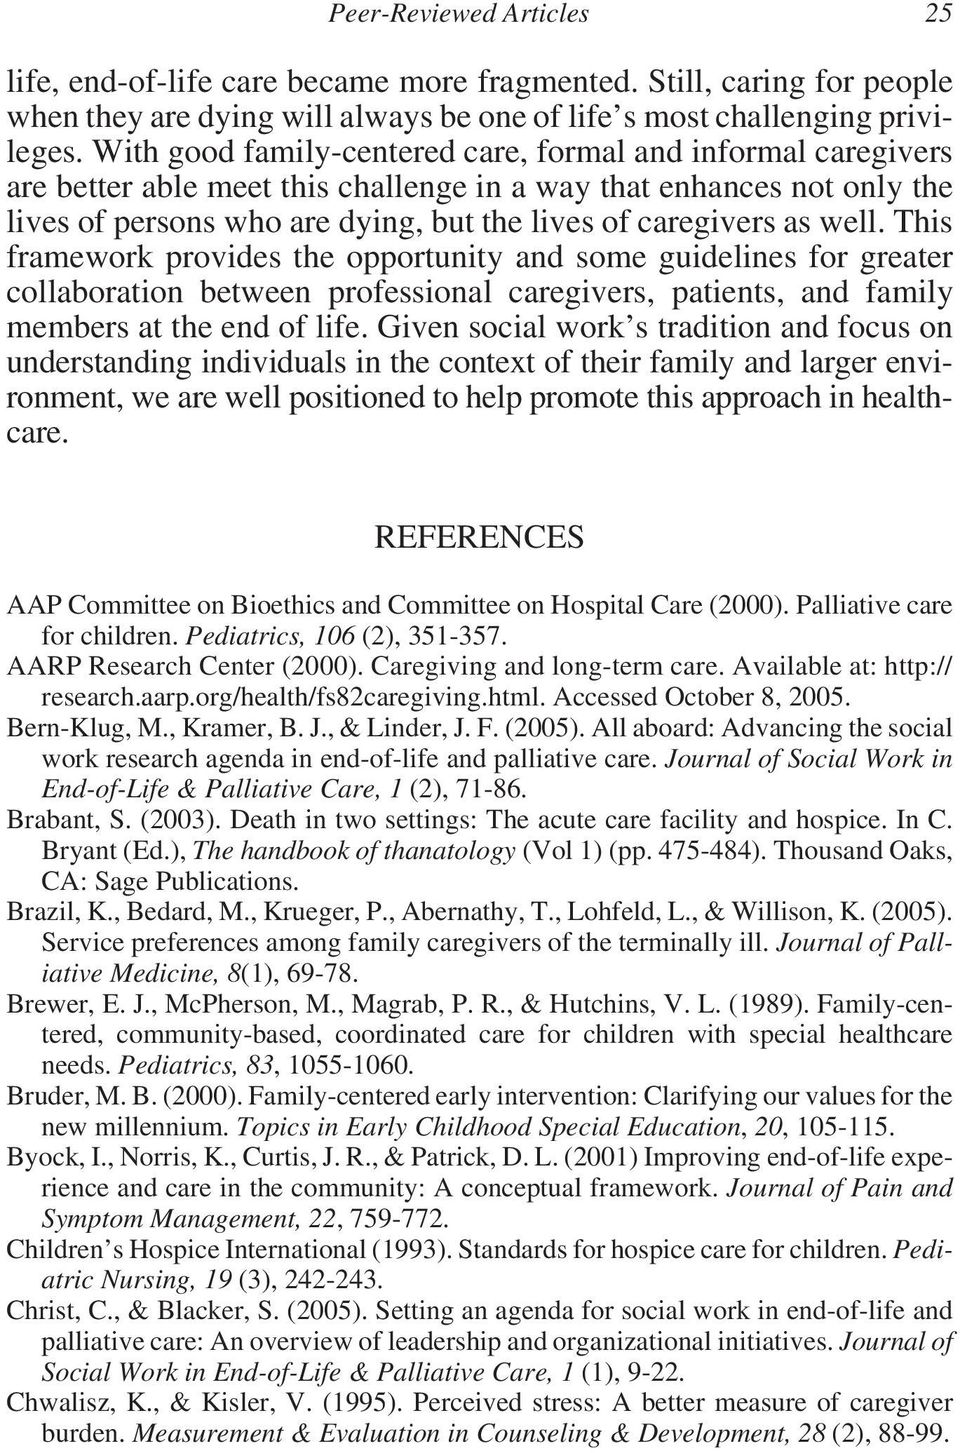 well. This framework provides the opportunity and some guidelines for greater collaboration between professional caregivers, patients, and family members at the end of life.